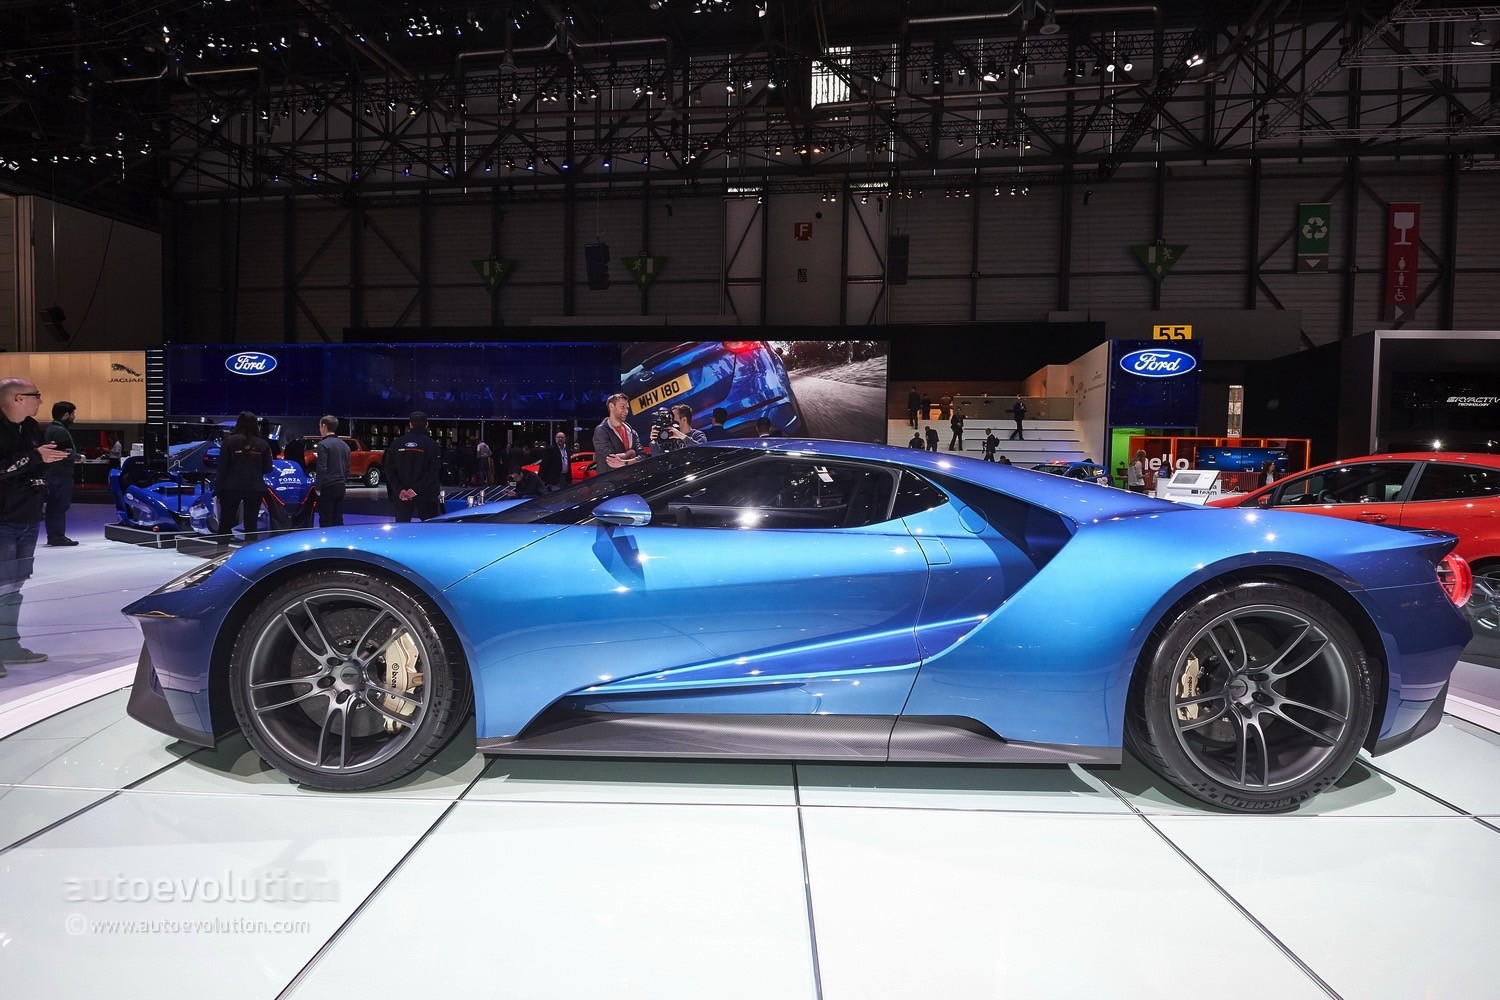 2017 ford gt makes jaws drop at the geneva motor show for Ford gt 2017 motor